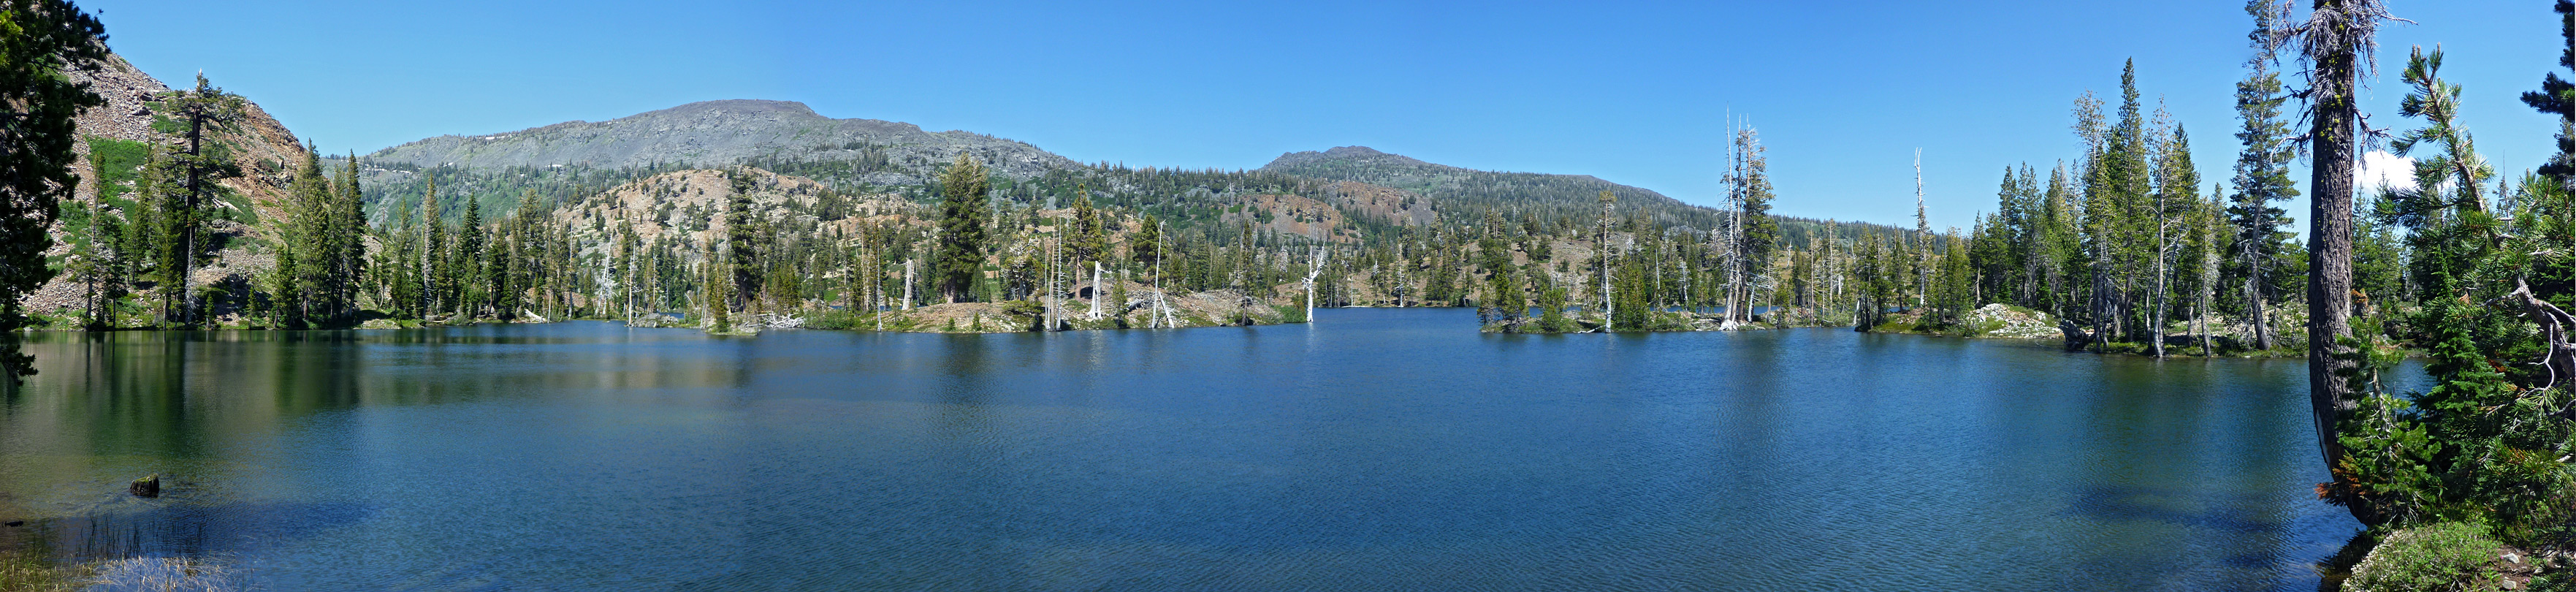 Panorama of Susie Lake